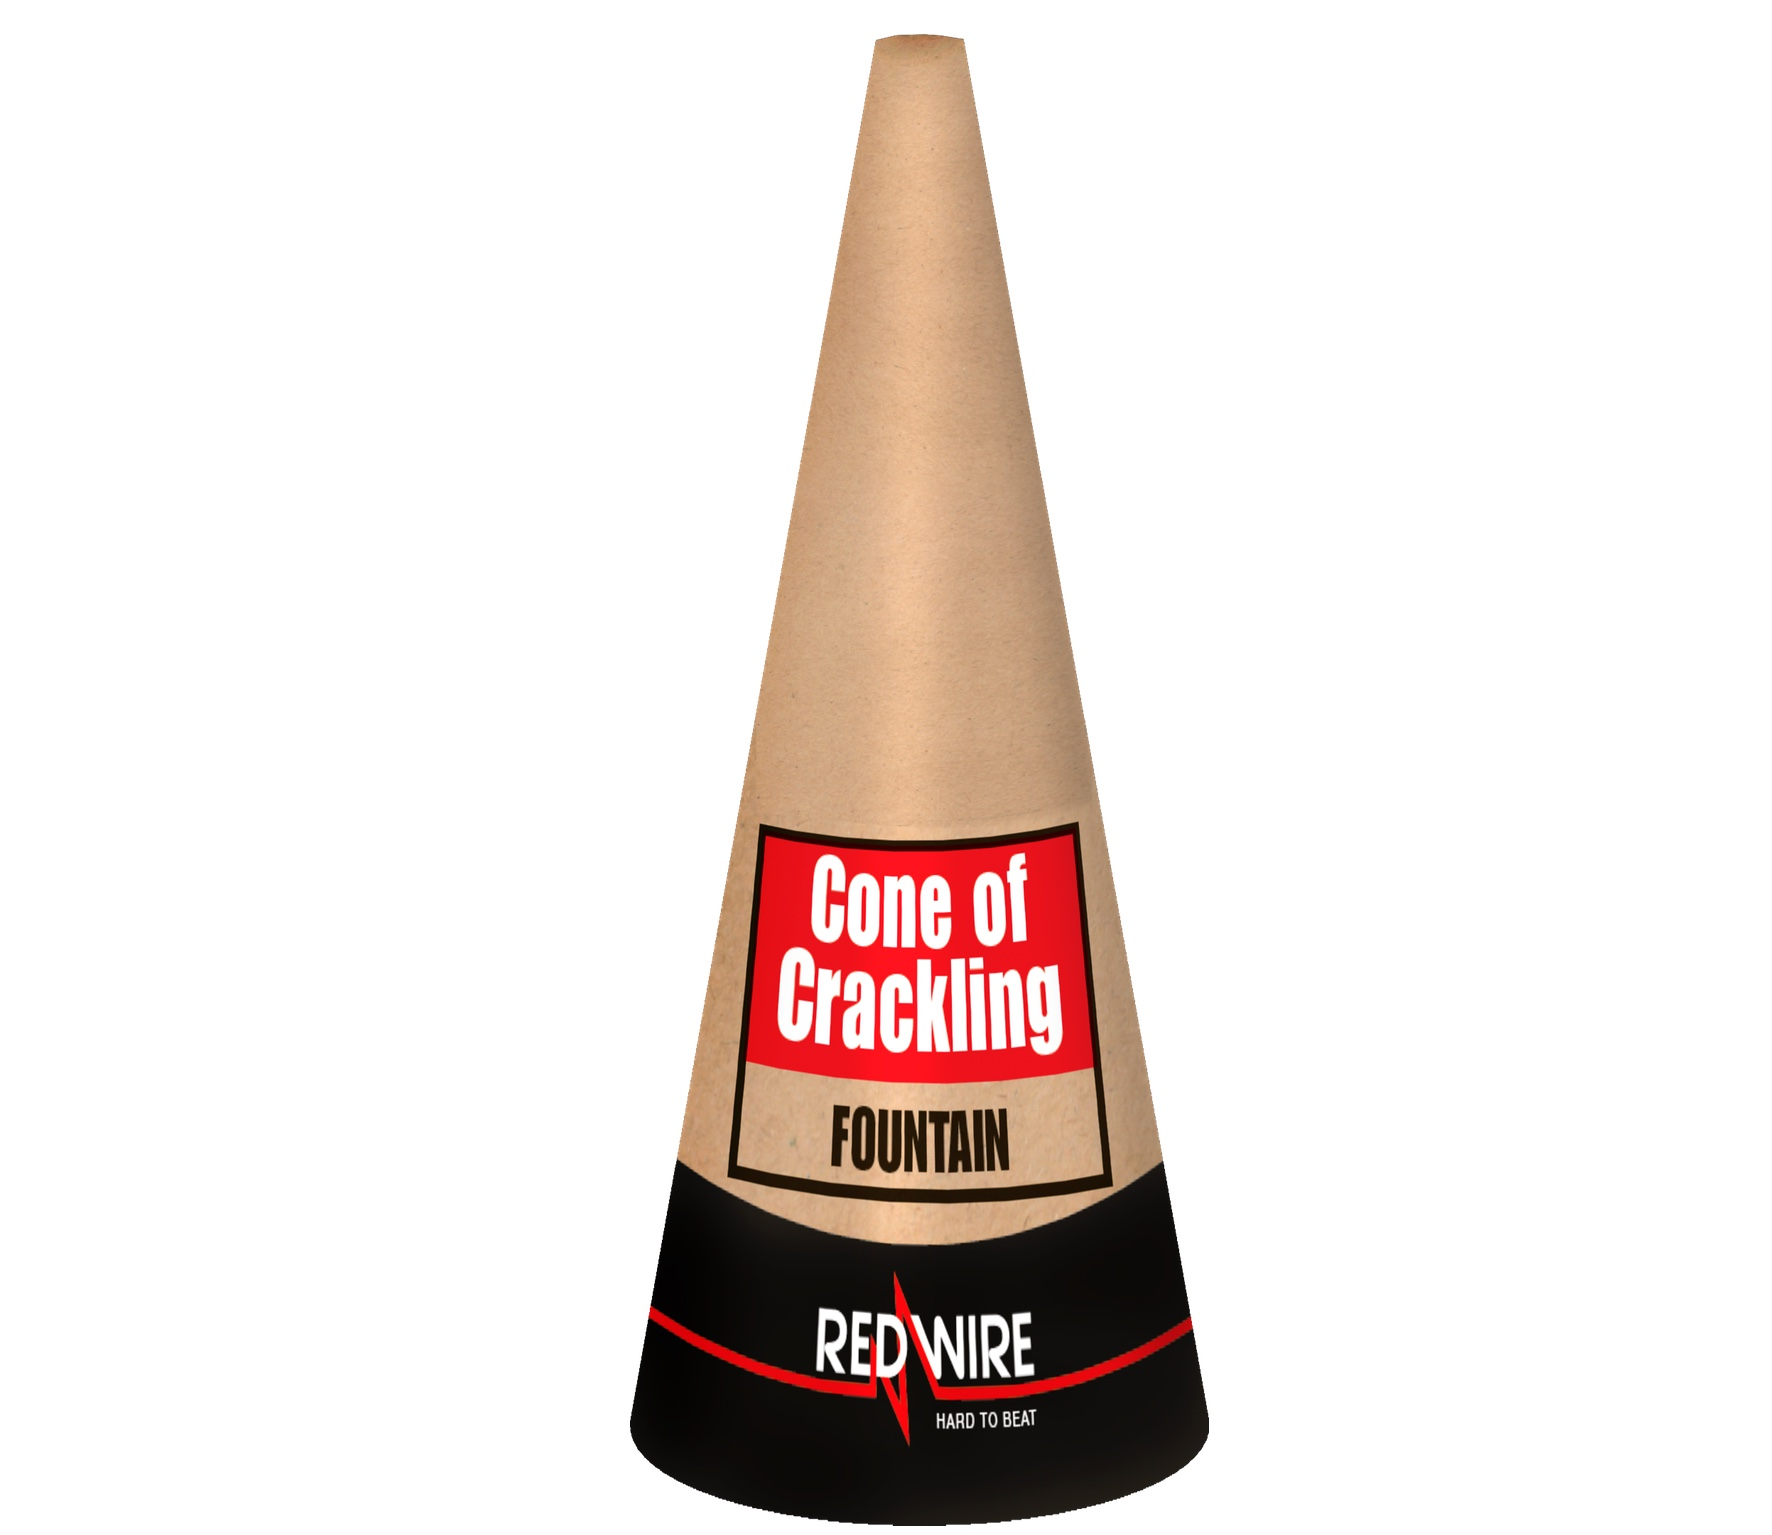 Cone of Crackling